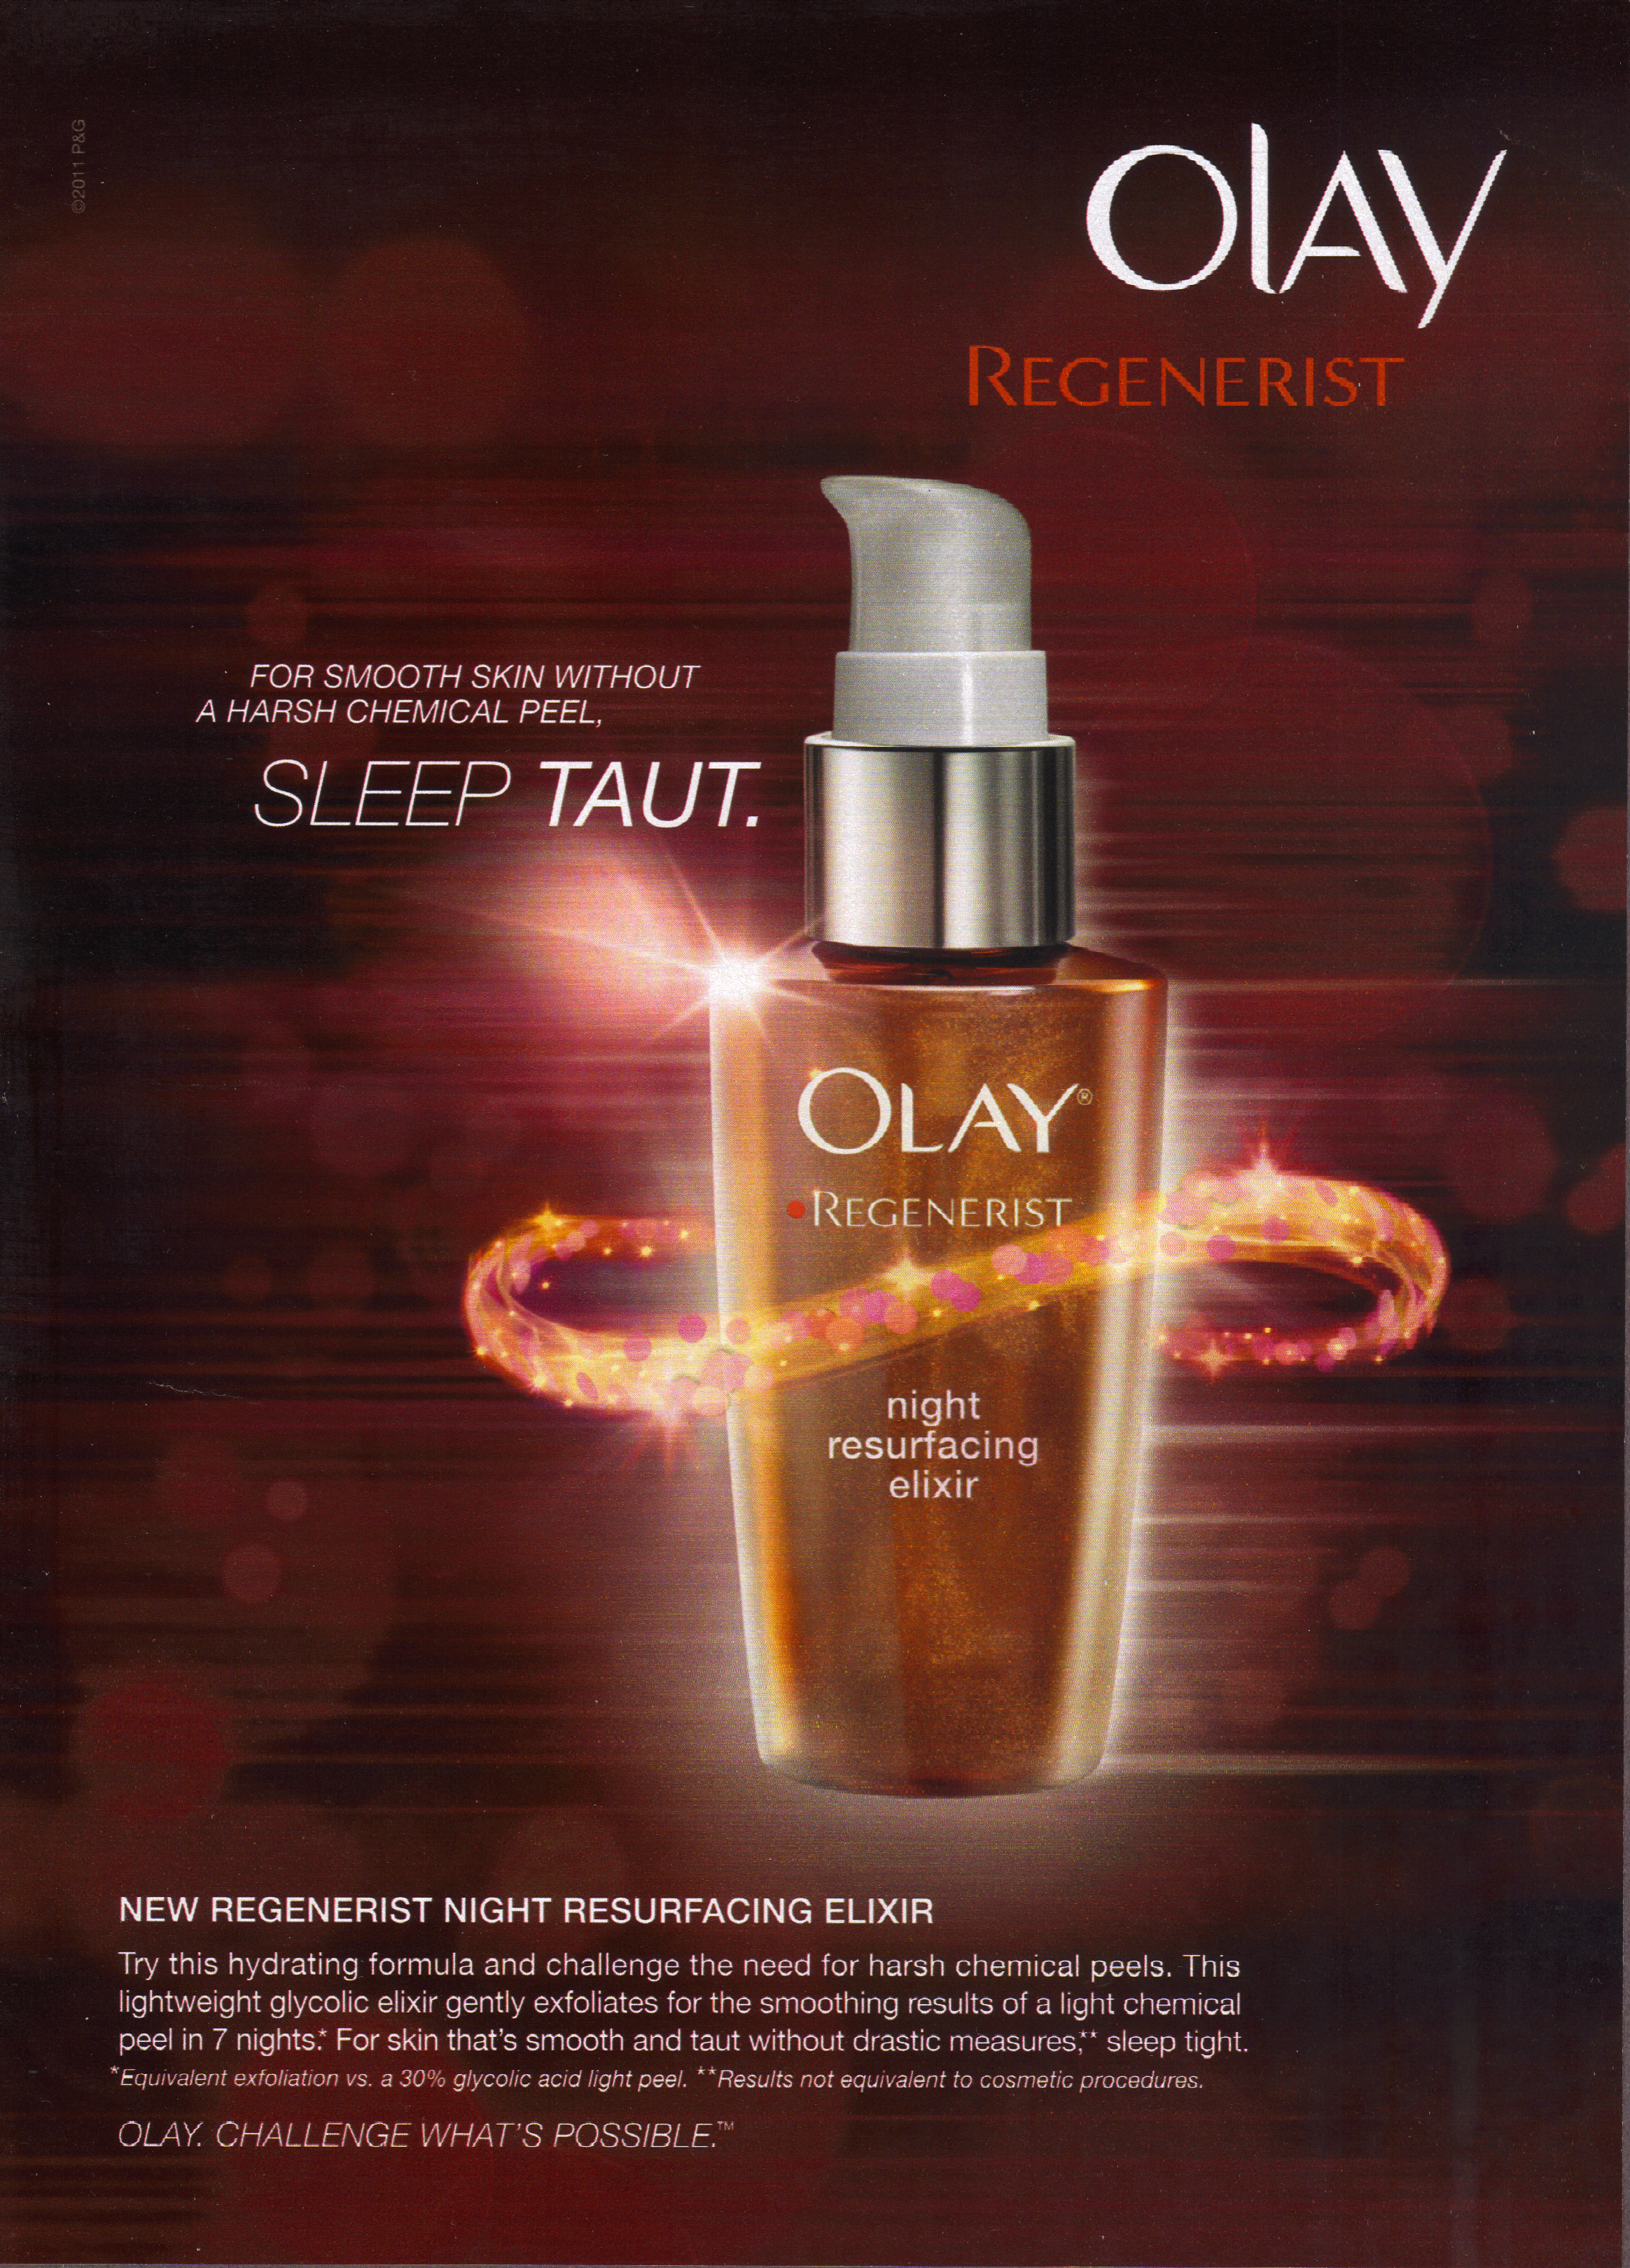 olay ad Olay regenerist may be able to restore the youthful look to your skin with regular application.